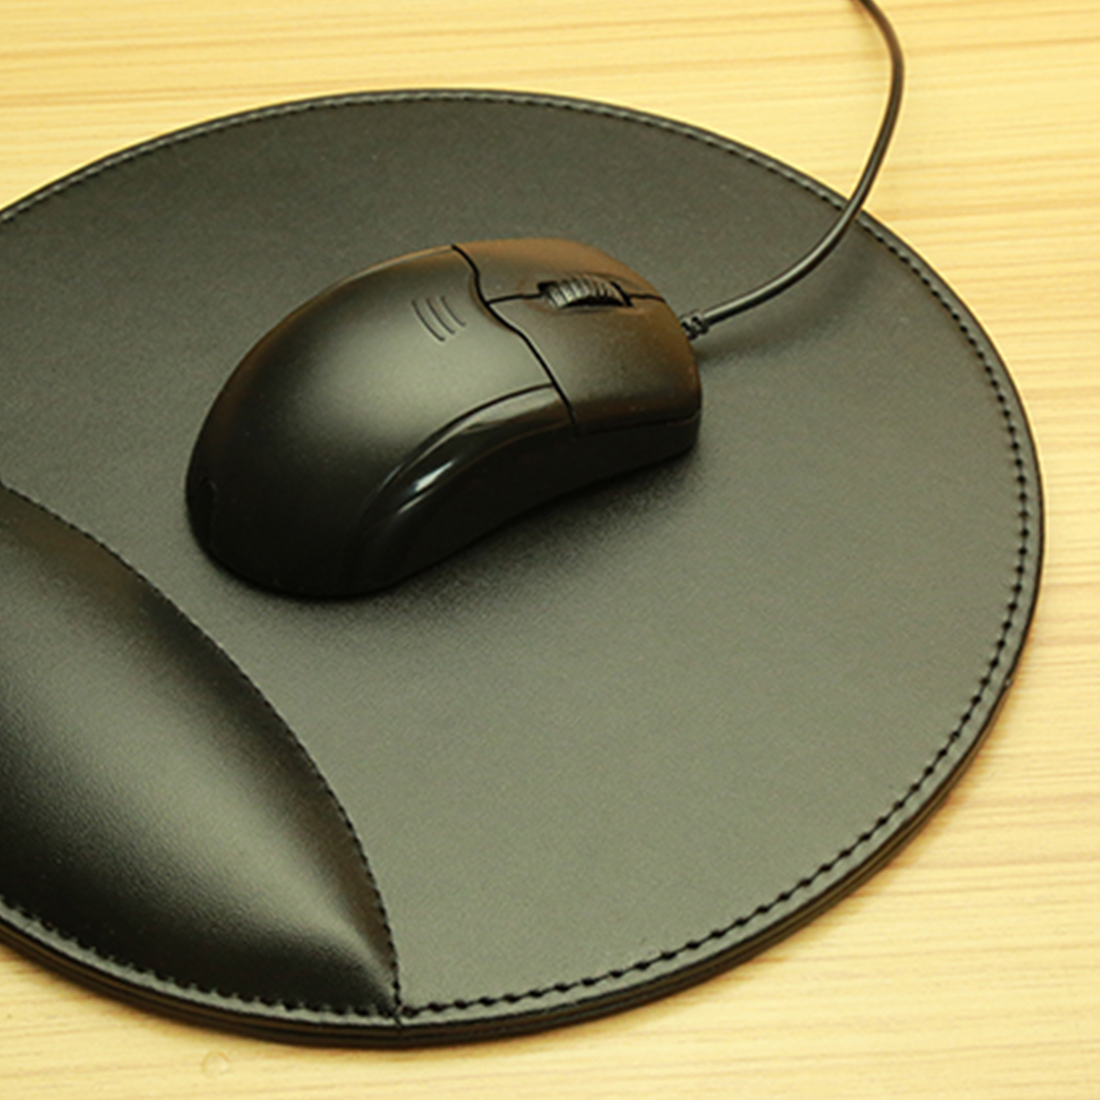 NOYOKERE Good Sale 3D Leather Computer Mouse Pad With Wrist Rest Ergonomic Office Soft Sponge Wrist Support Mat Mousepad For PC